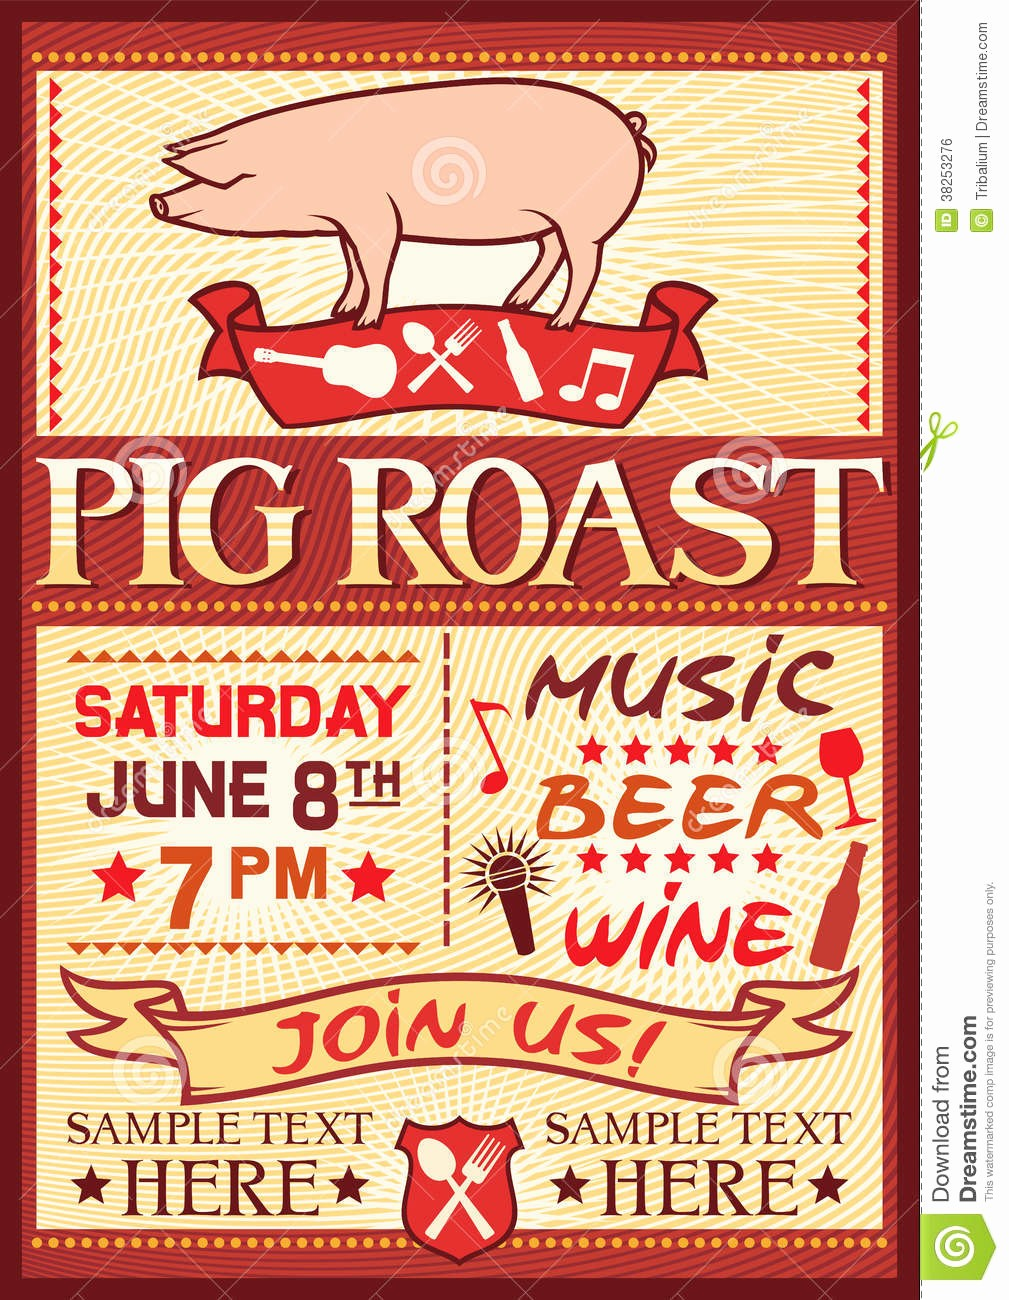 Pig Roast Invitation Template Free Beautiful Pig Roast Poster Stock Vector Illustration Of Fire